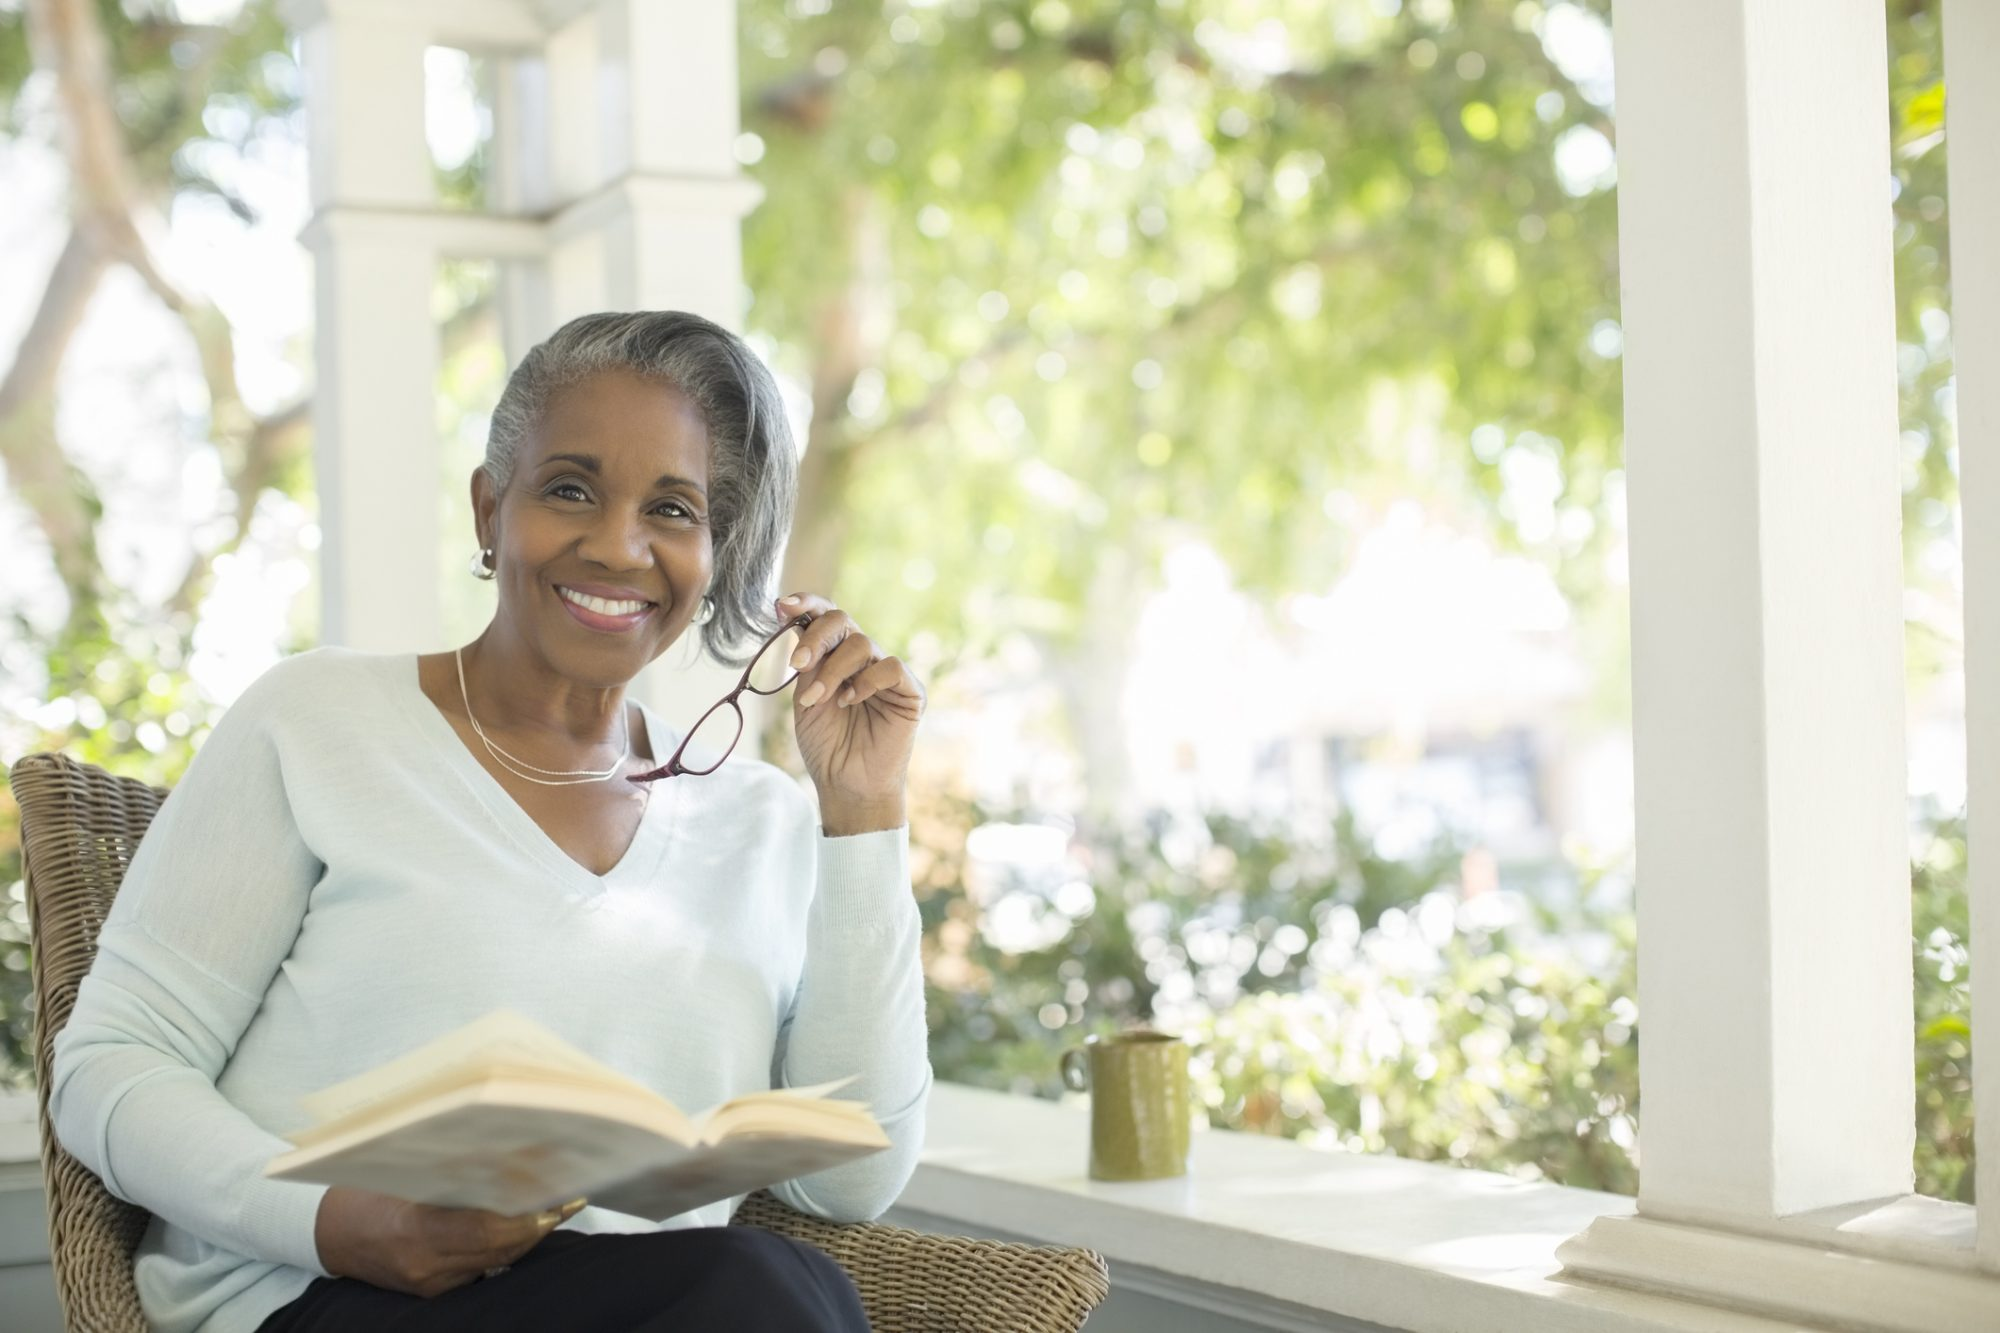 Woman Reading Book on Porch